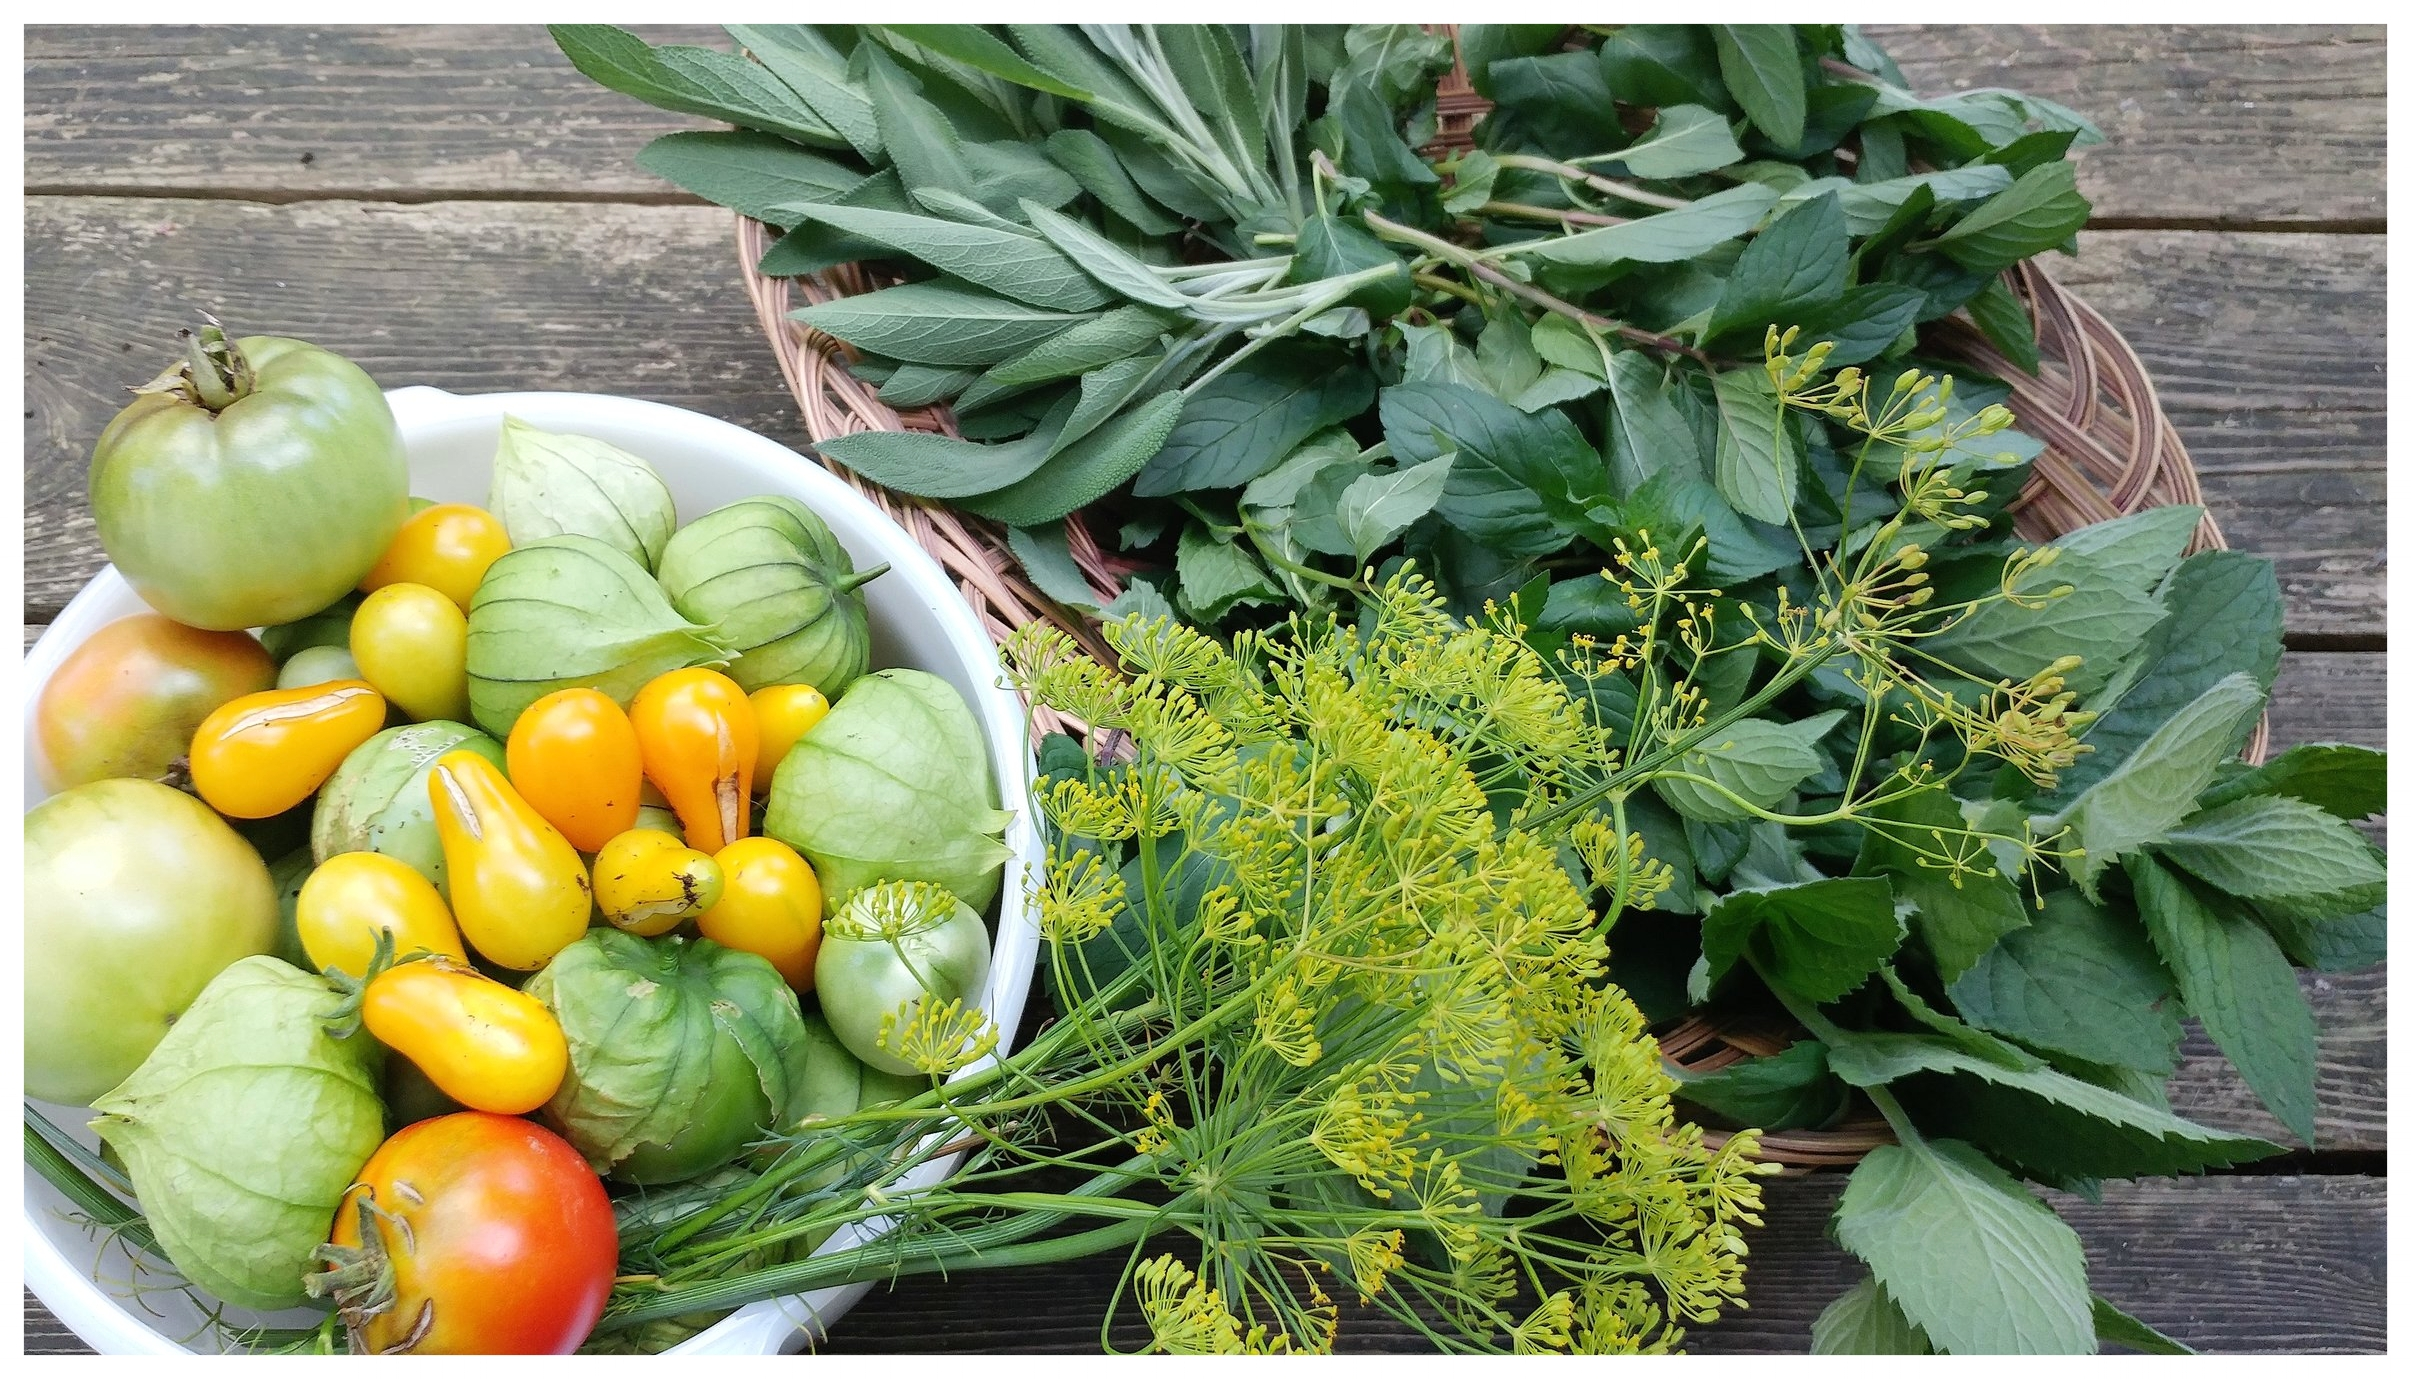 Bountiful harvest from a permaculture garden.